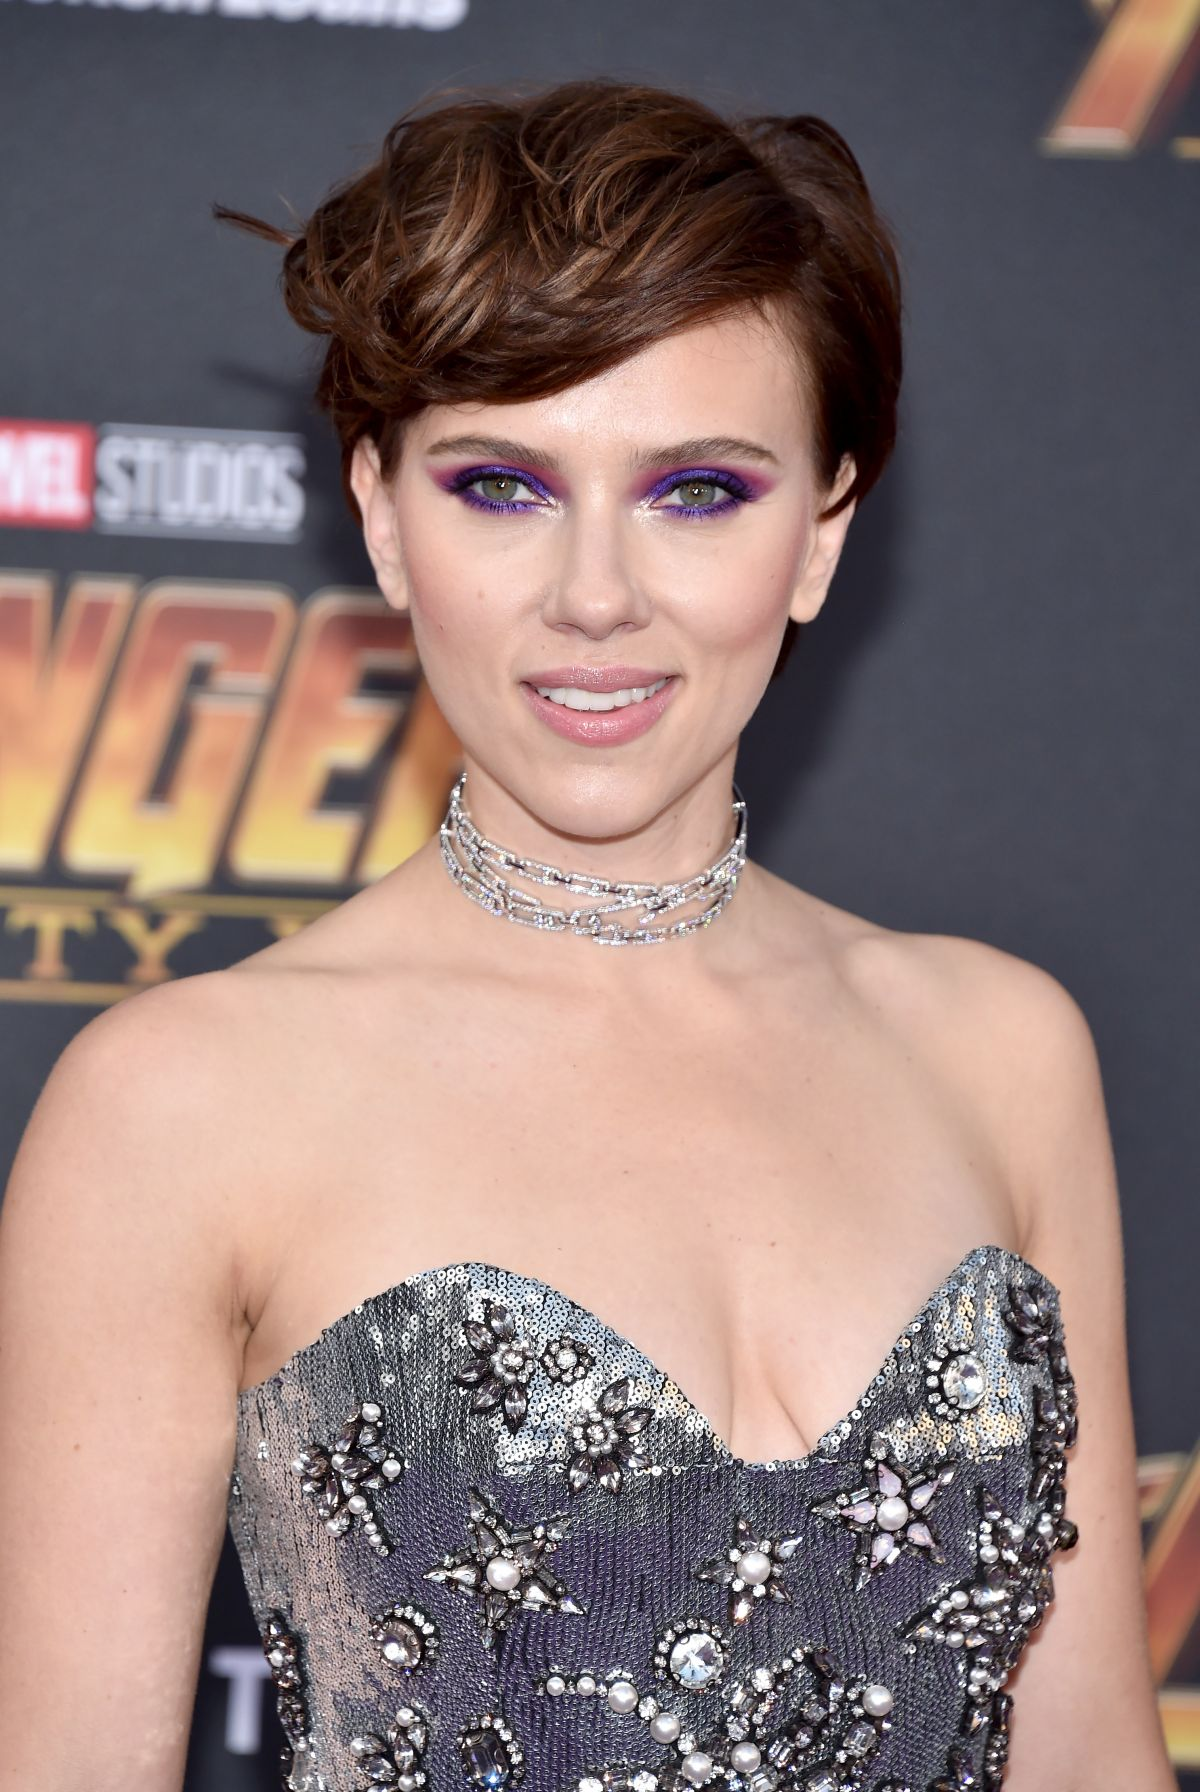 Scarlett Johansson | Doblaje Wiki | FANDOM powered by Wikia